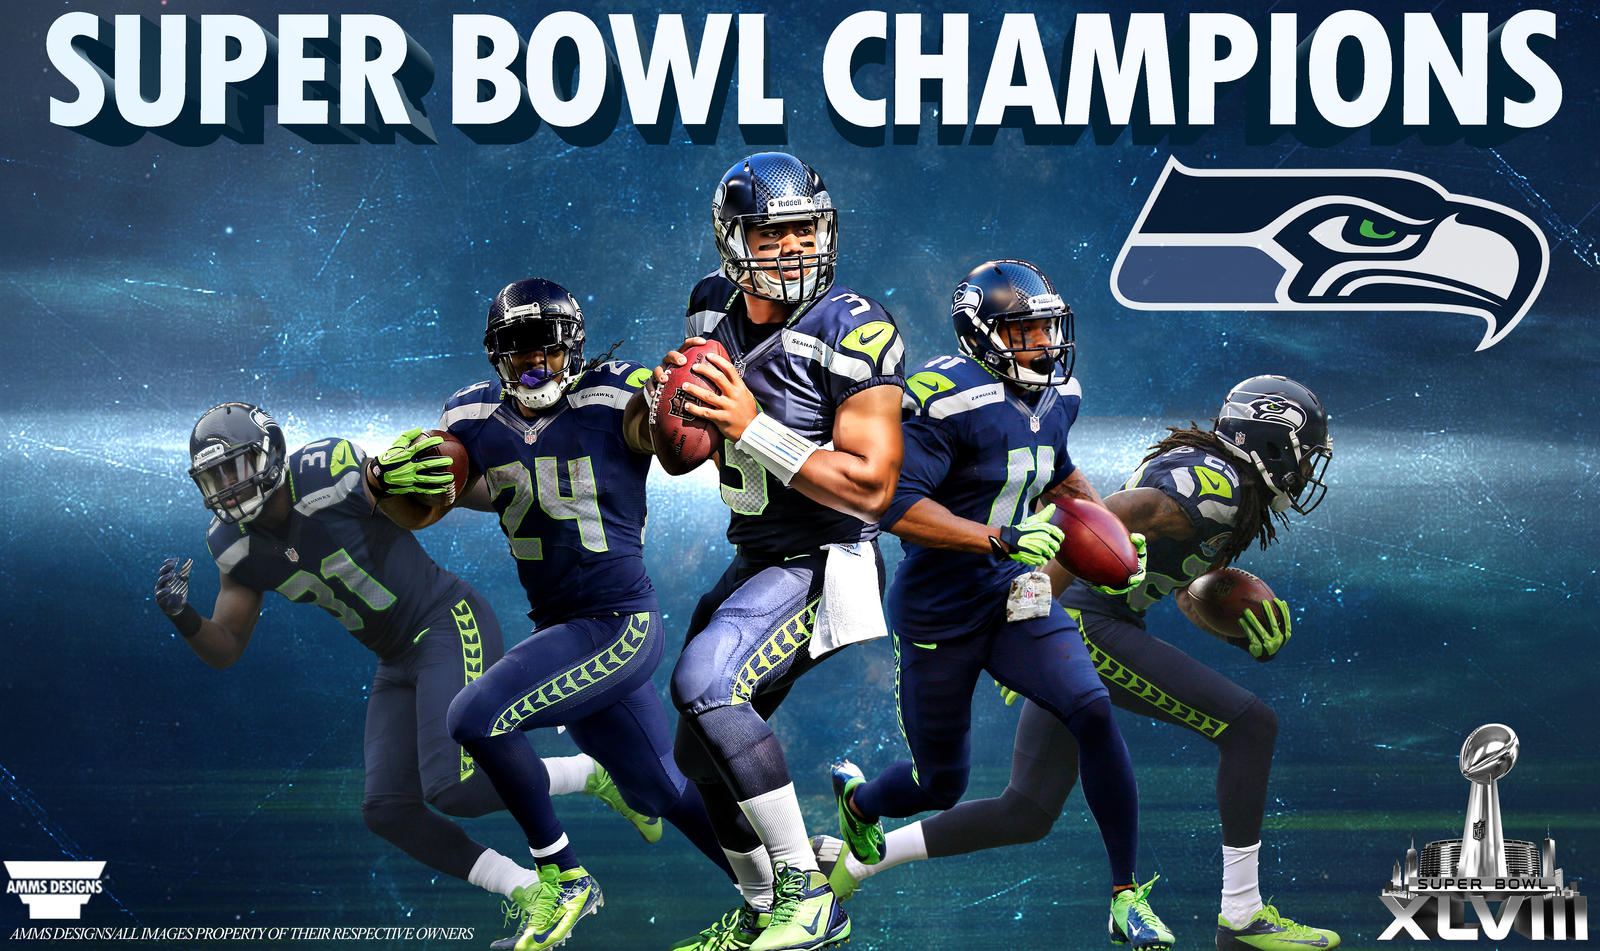 Find great deals on eBay for Seahawks Poster in NFL Football Fan Apparel and Souvenirs. Shop with confidence. Skip to main content. eBay: Shop by category. New 2 NFL Super Bowl Champions Seattle Seahawks Poster 11 x 17 On Sale Now $ $ Buy It Now. Free Shipping. 17 watching |.